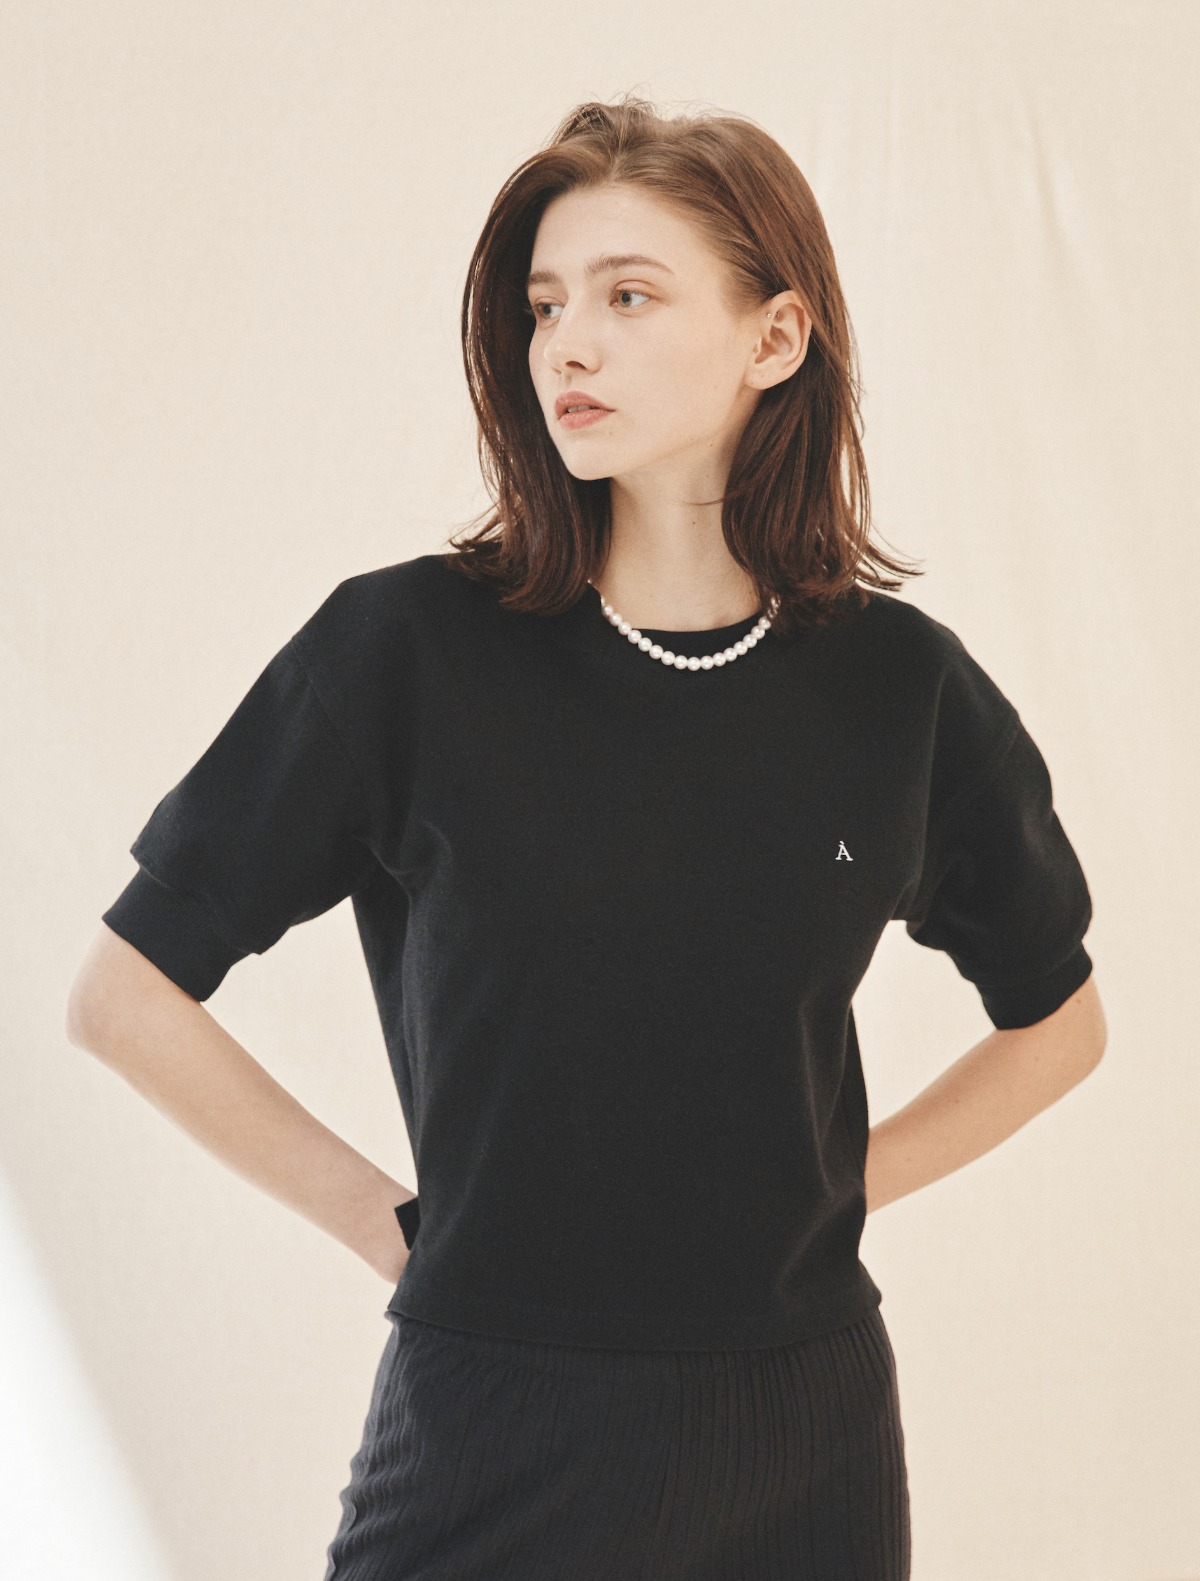 2nd REORDER · À Logo Short-Sleeve Sweatshirt (Black)